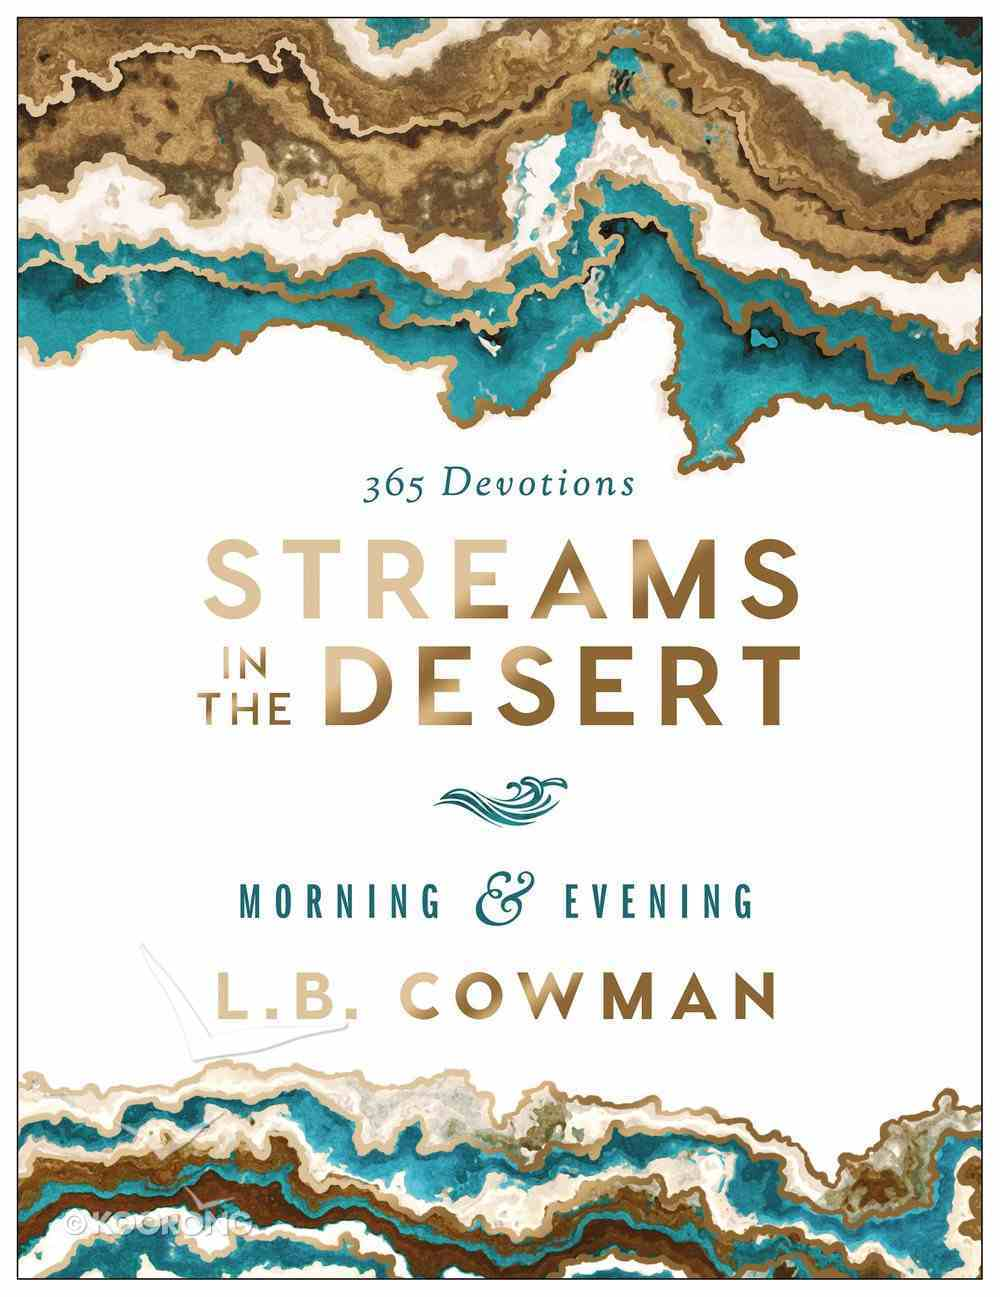 Streams in the Desert Morning and Evening eBook